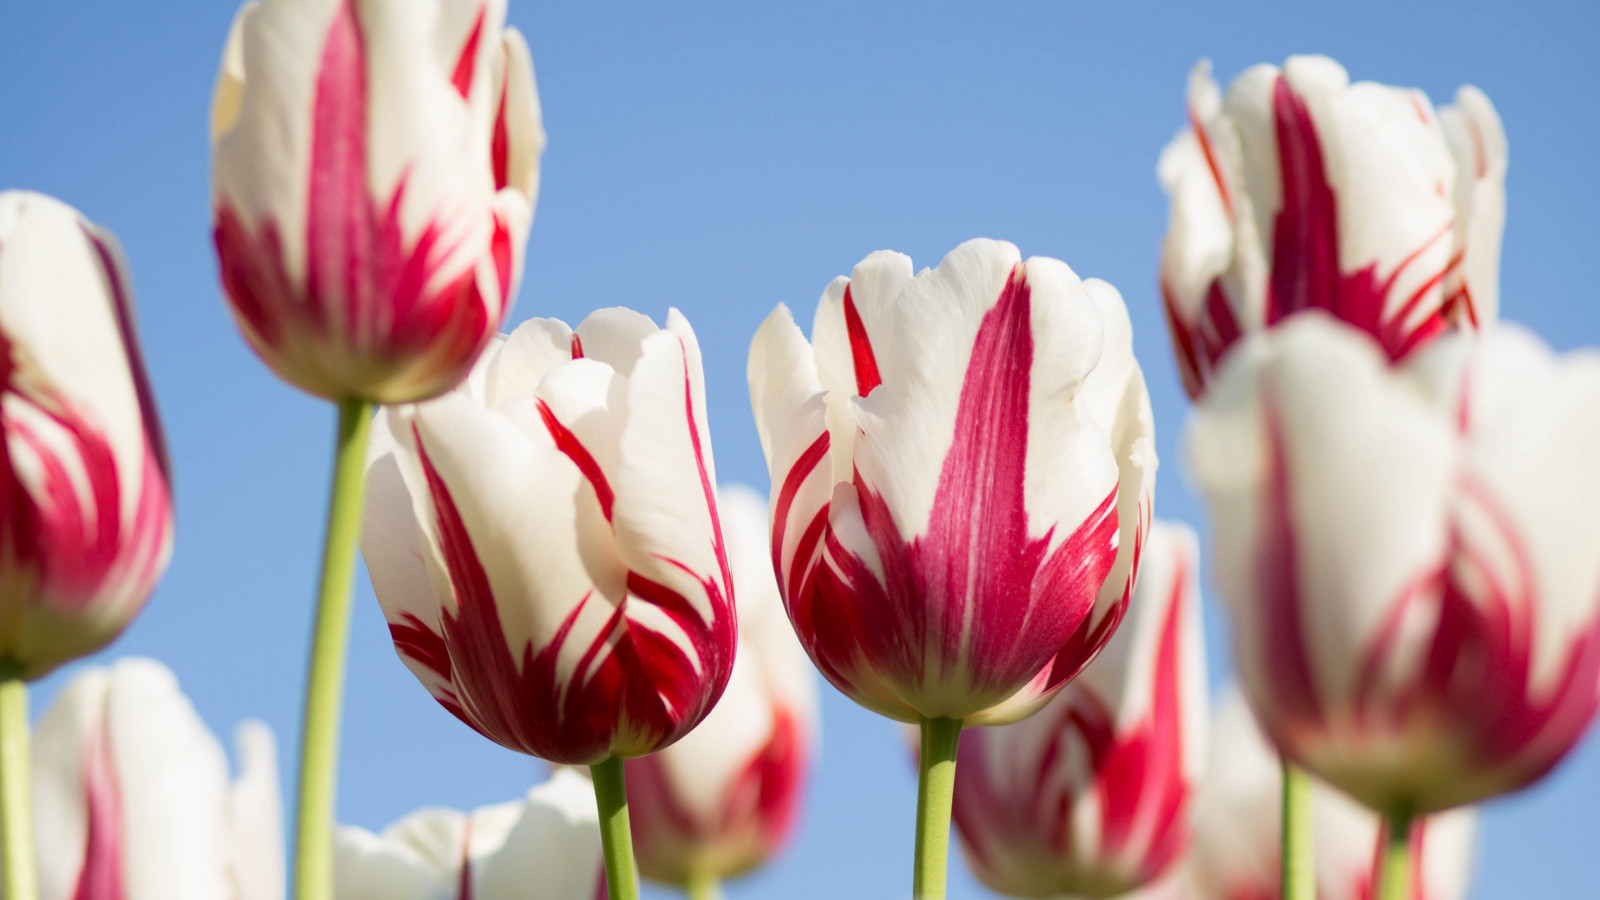 Red white tulips wallpaper 1600x900